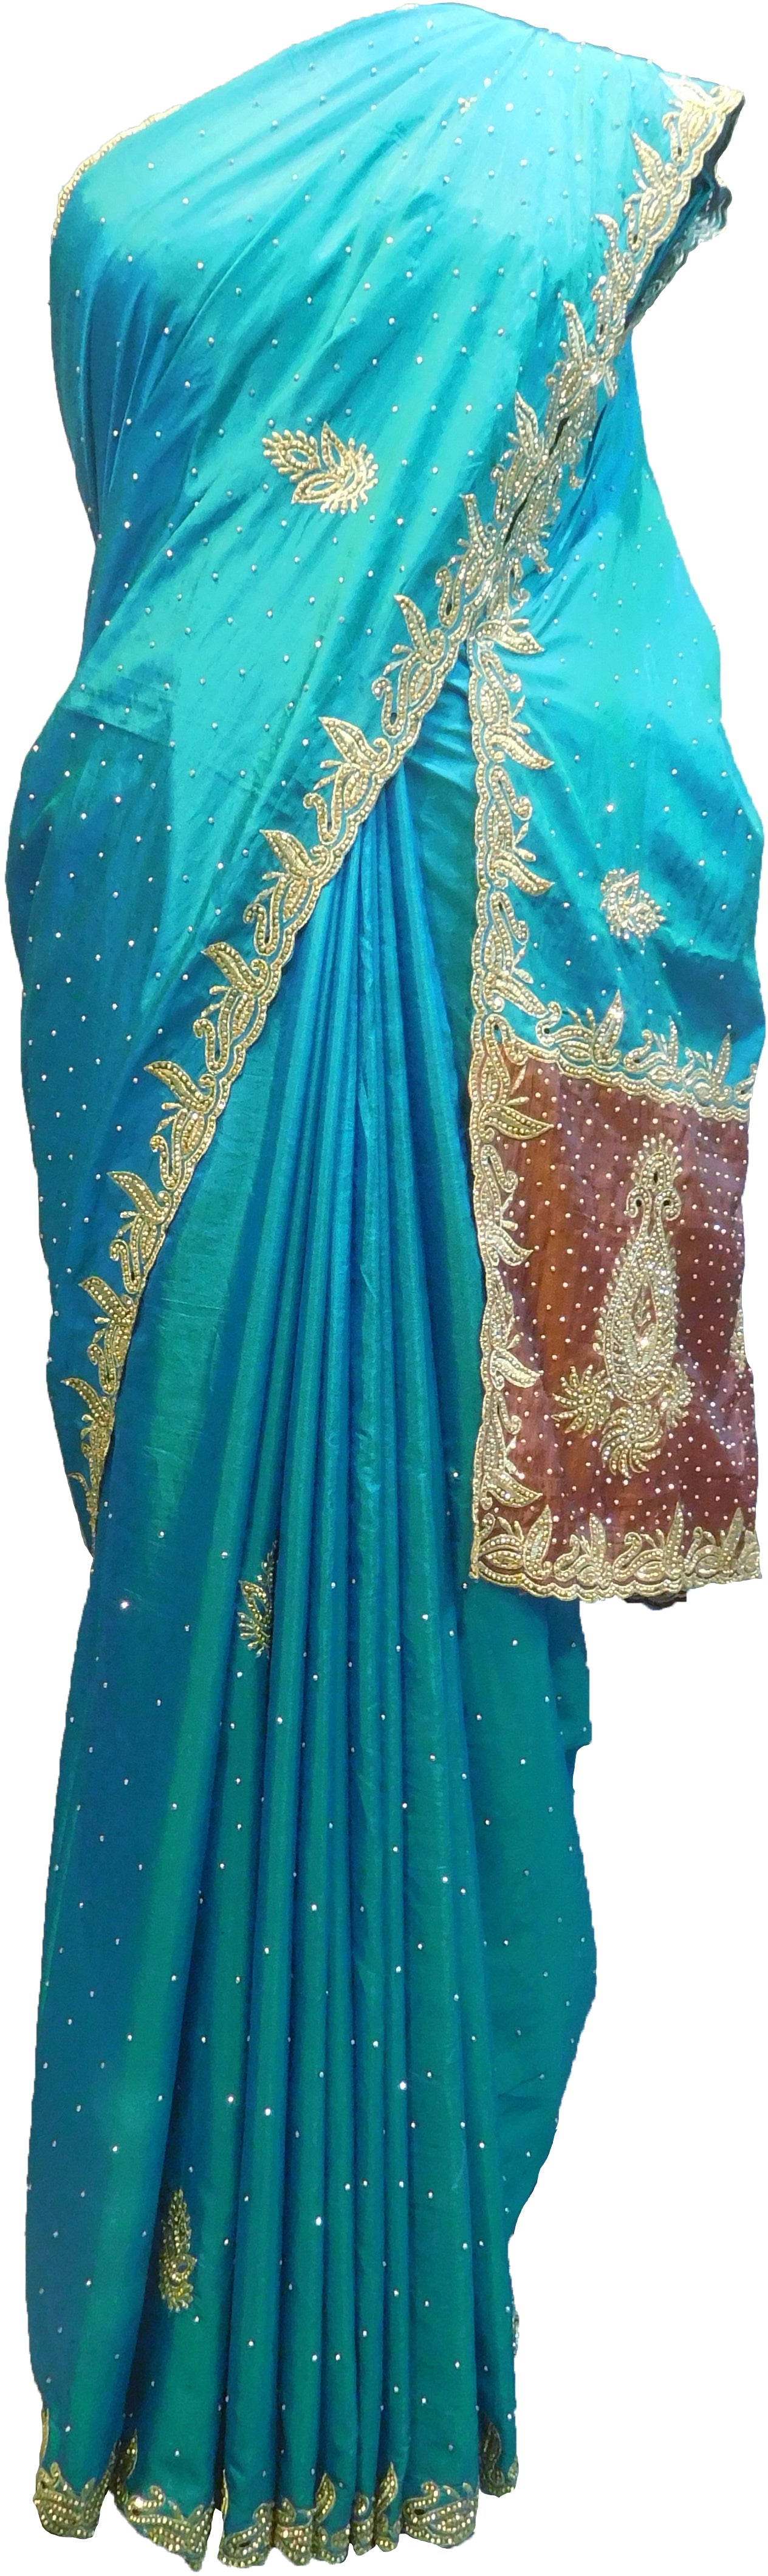 SMSAREE Blue & Brown Designer Wedding Partywear Silk Stone & Zari Hand Embroidery Work Bridal Saree Sari With Blouse Piece F287